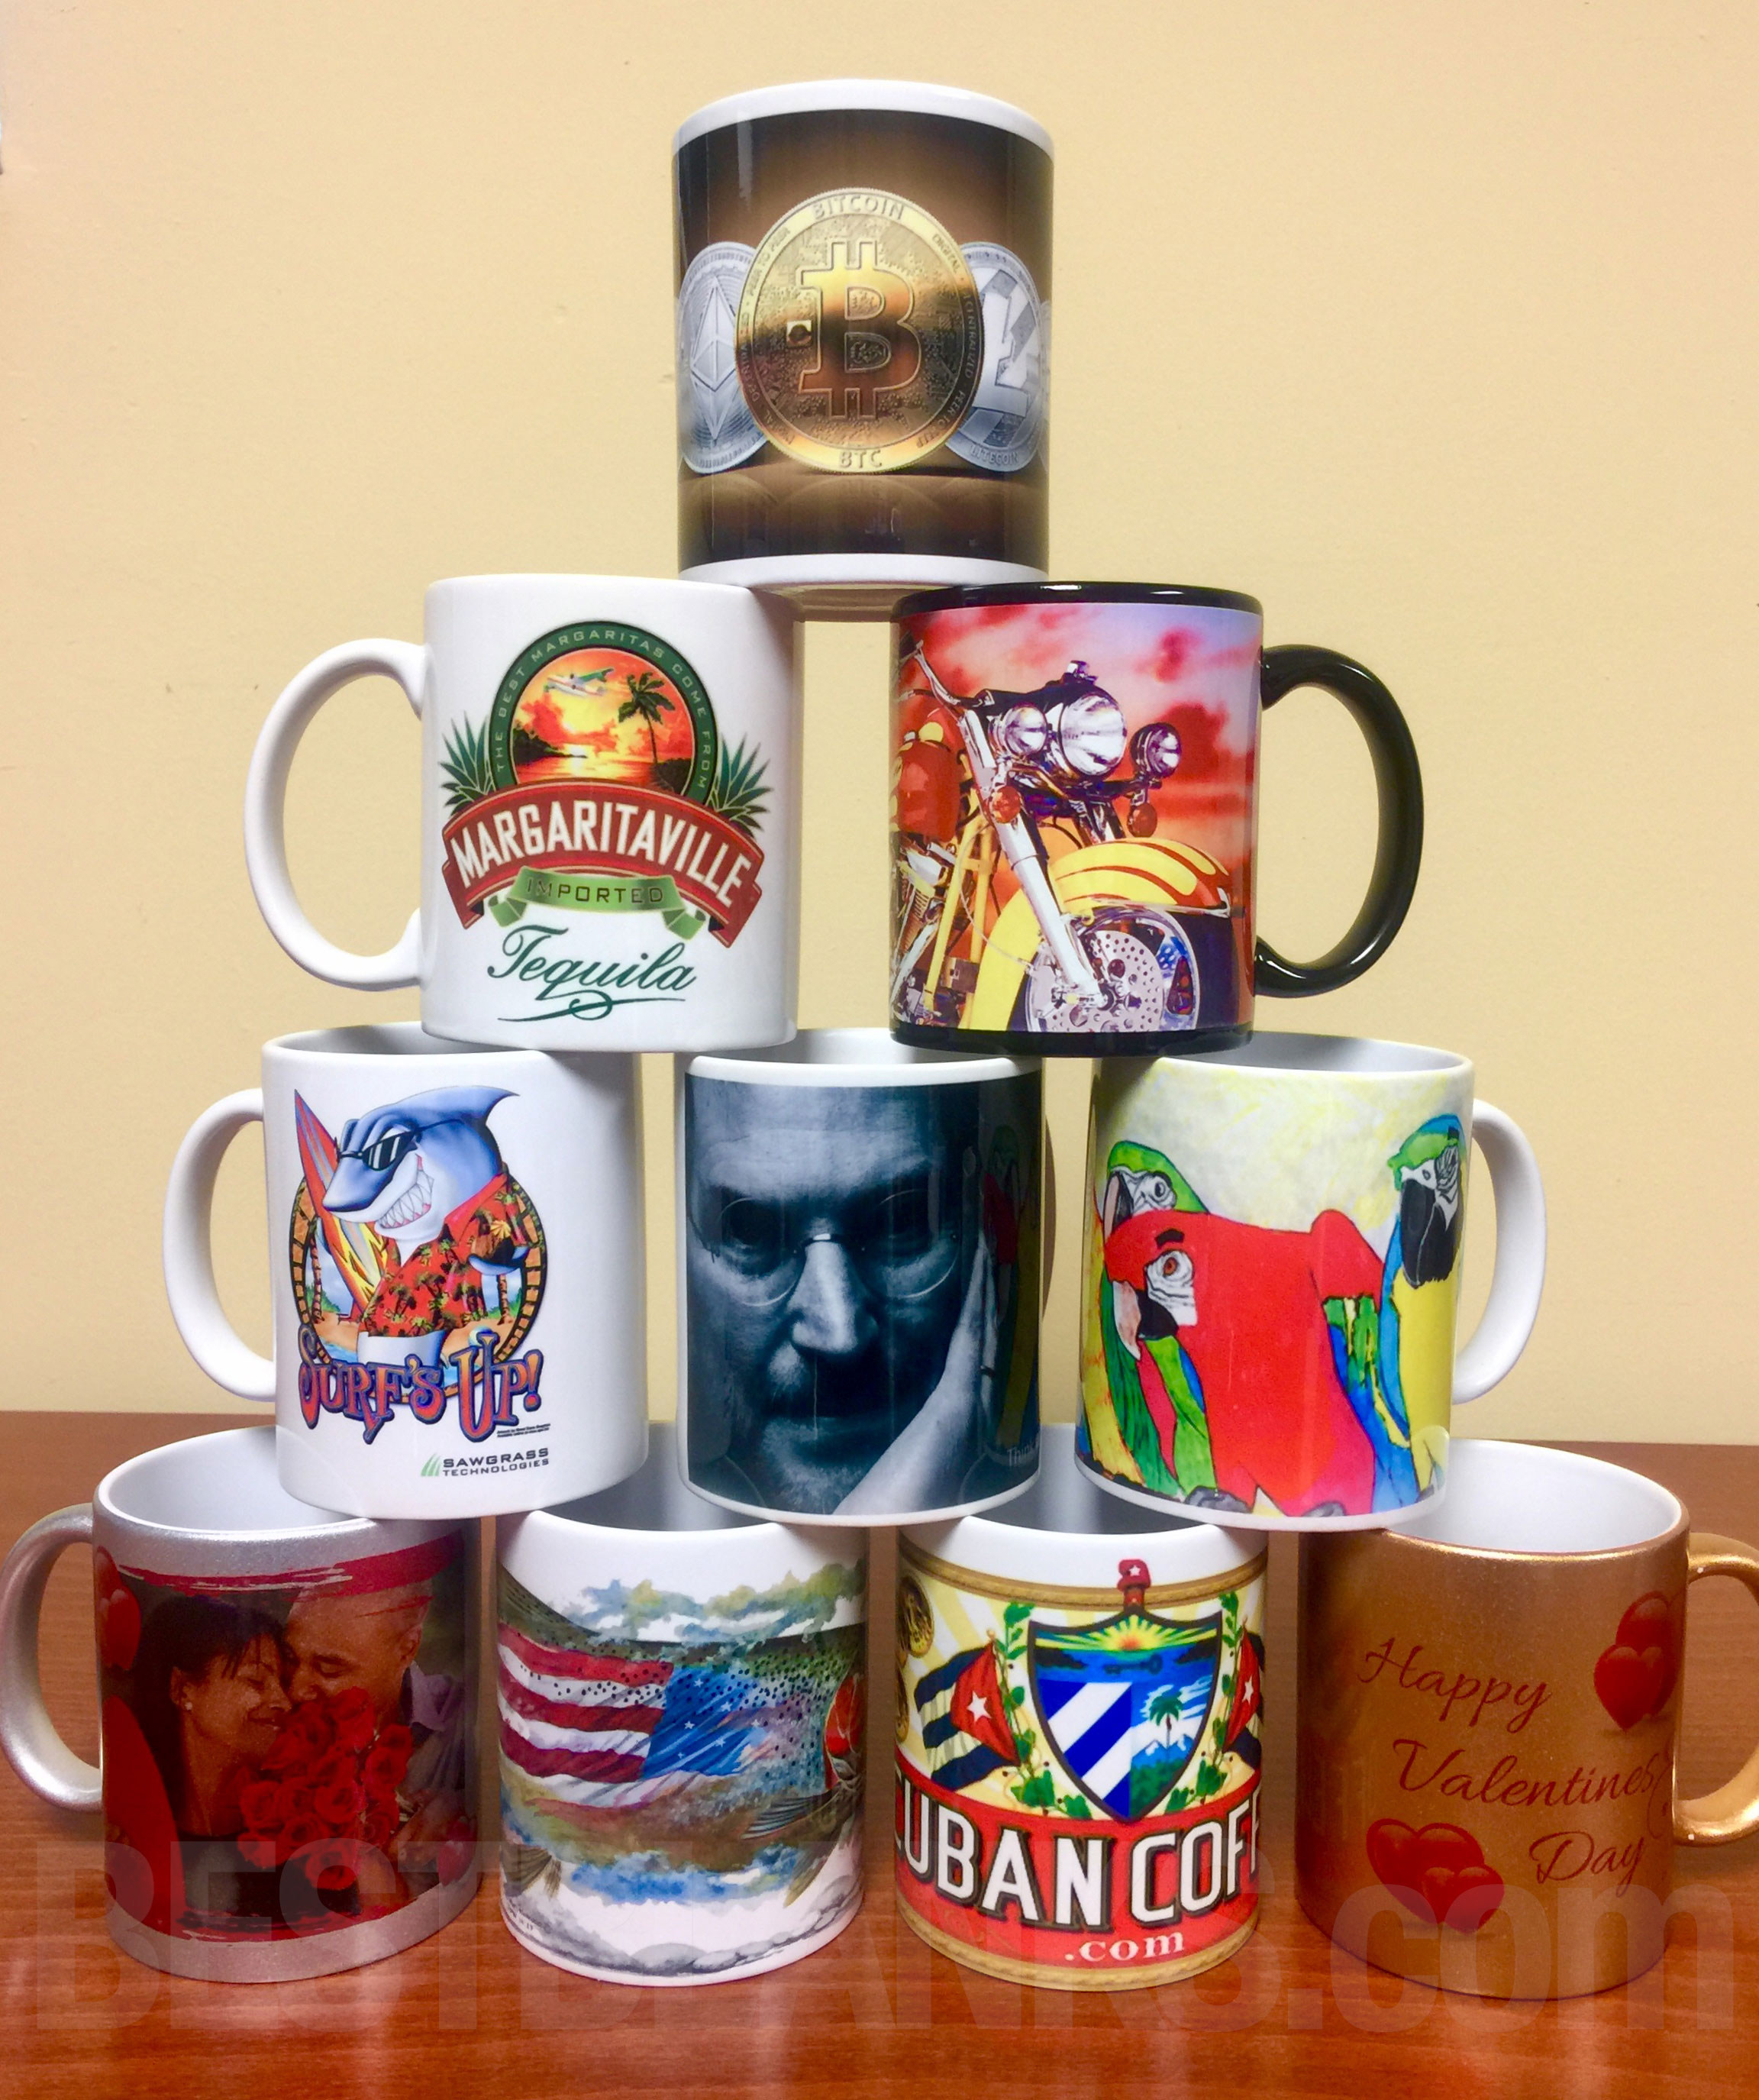 Sublimate Ceramic Mugs With Sublimation Printer Mug Press